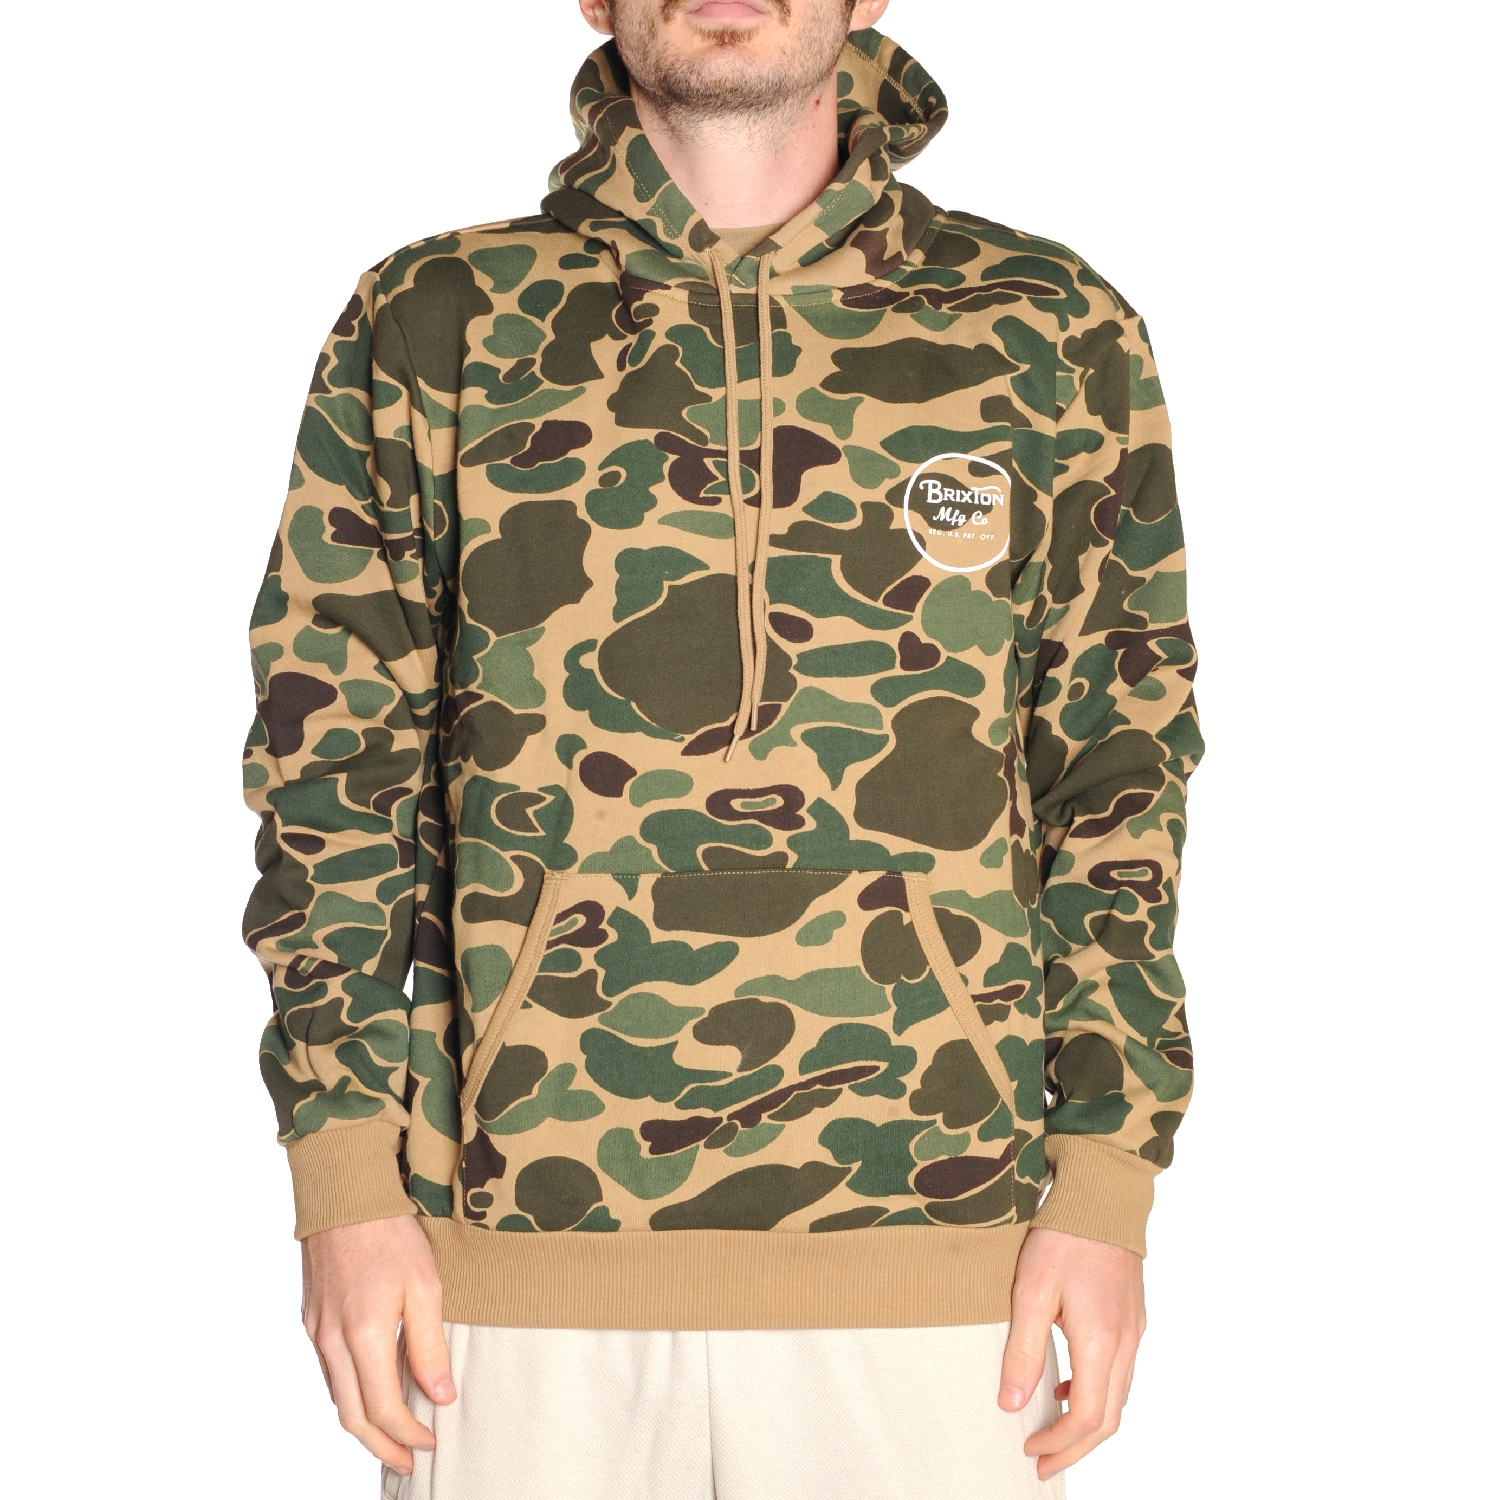 Brixton Wheeler (olive Camo) Pullover Hoodie Large Camo | eBay